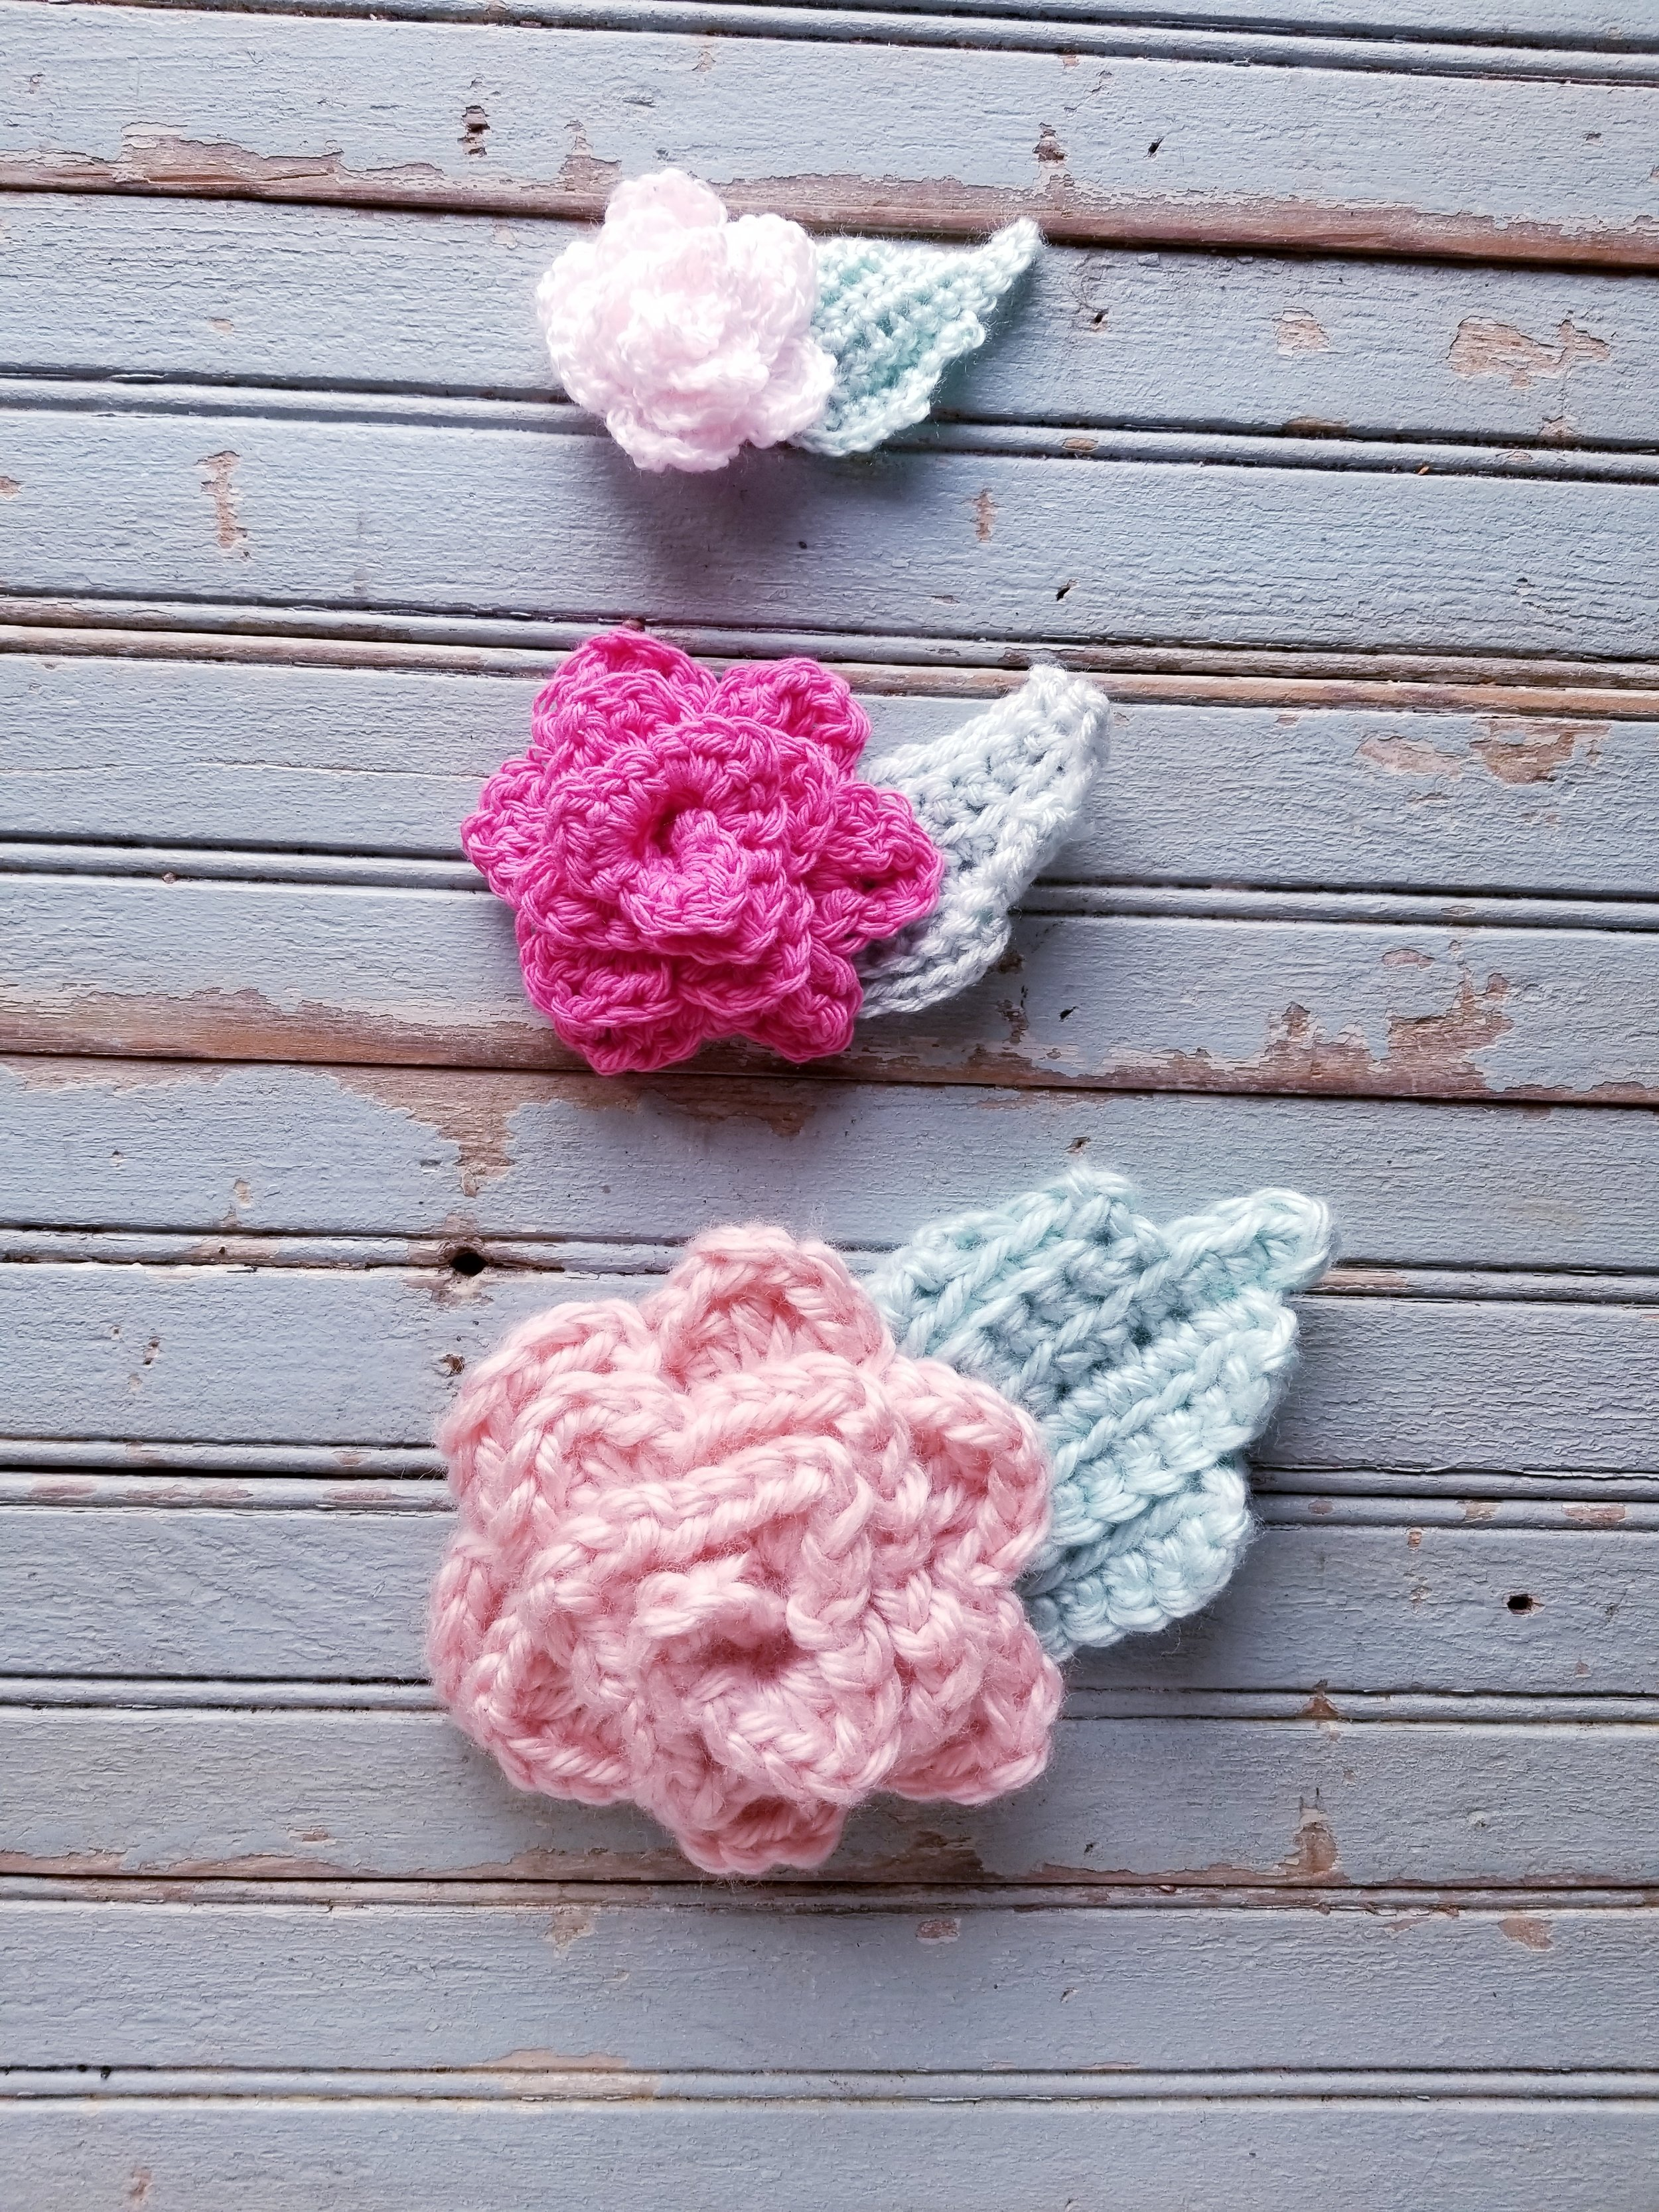 Crochet rosettes free pattern and photo tutorial